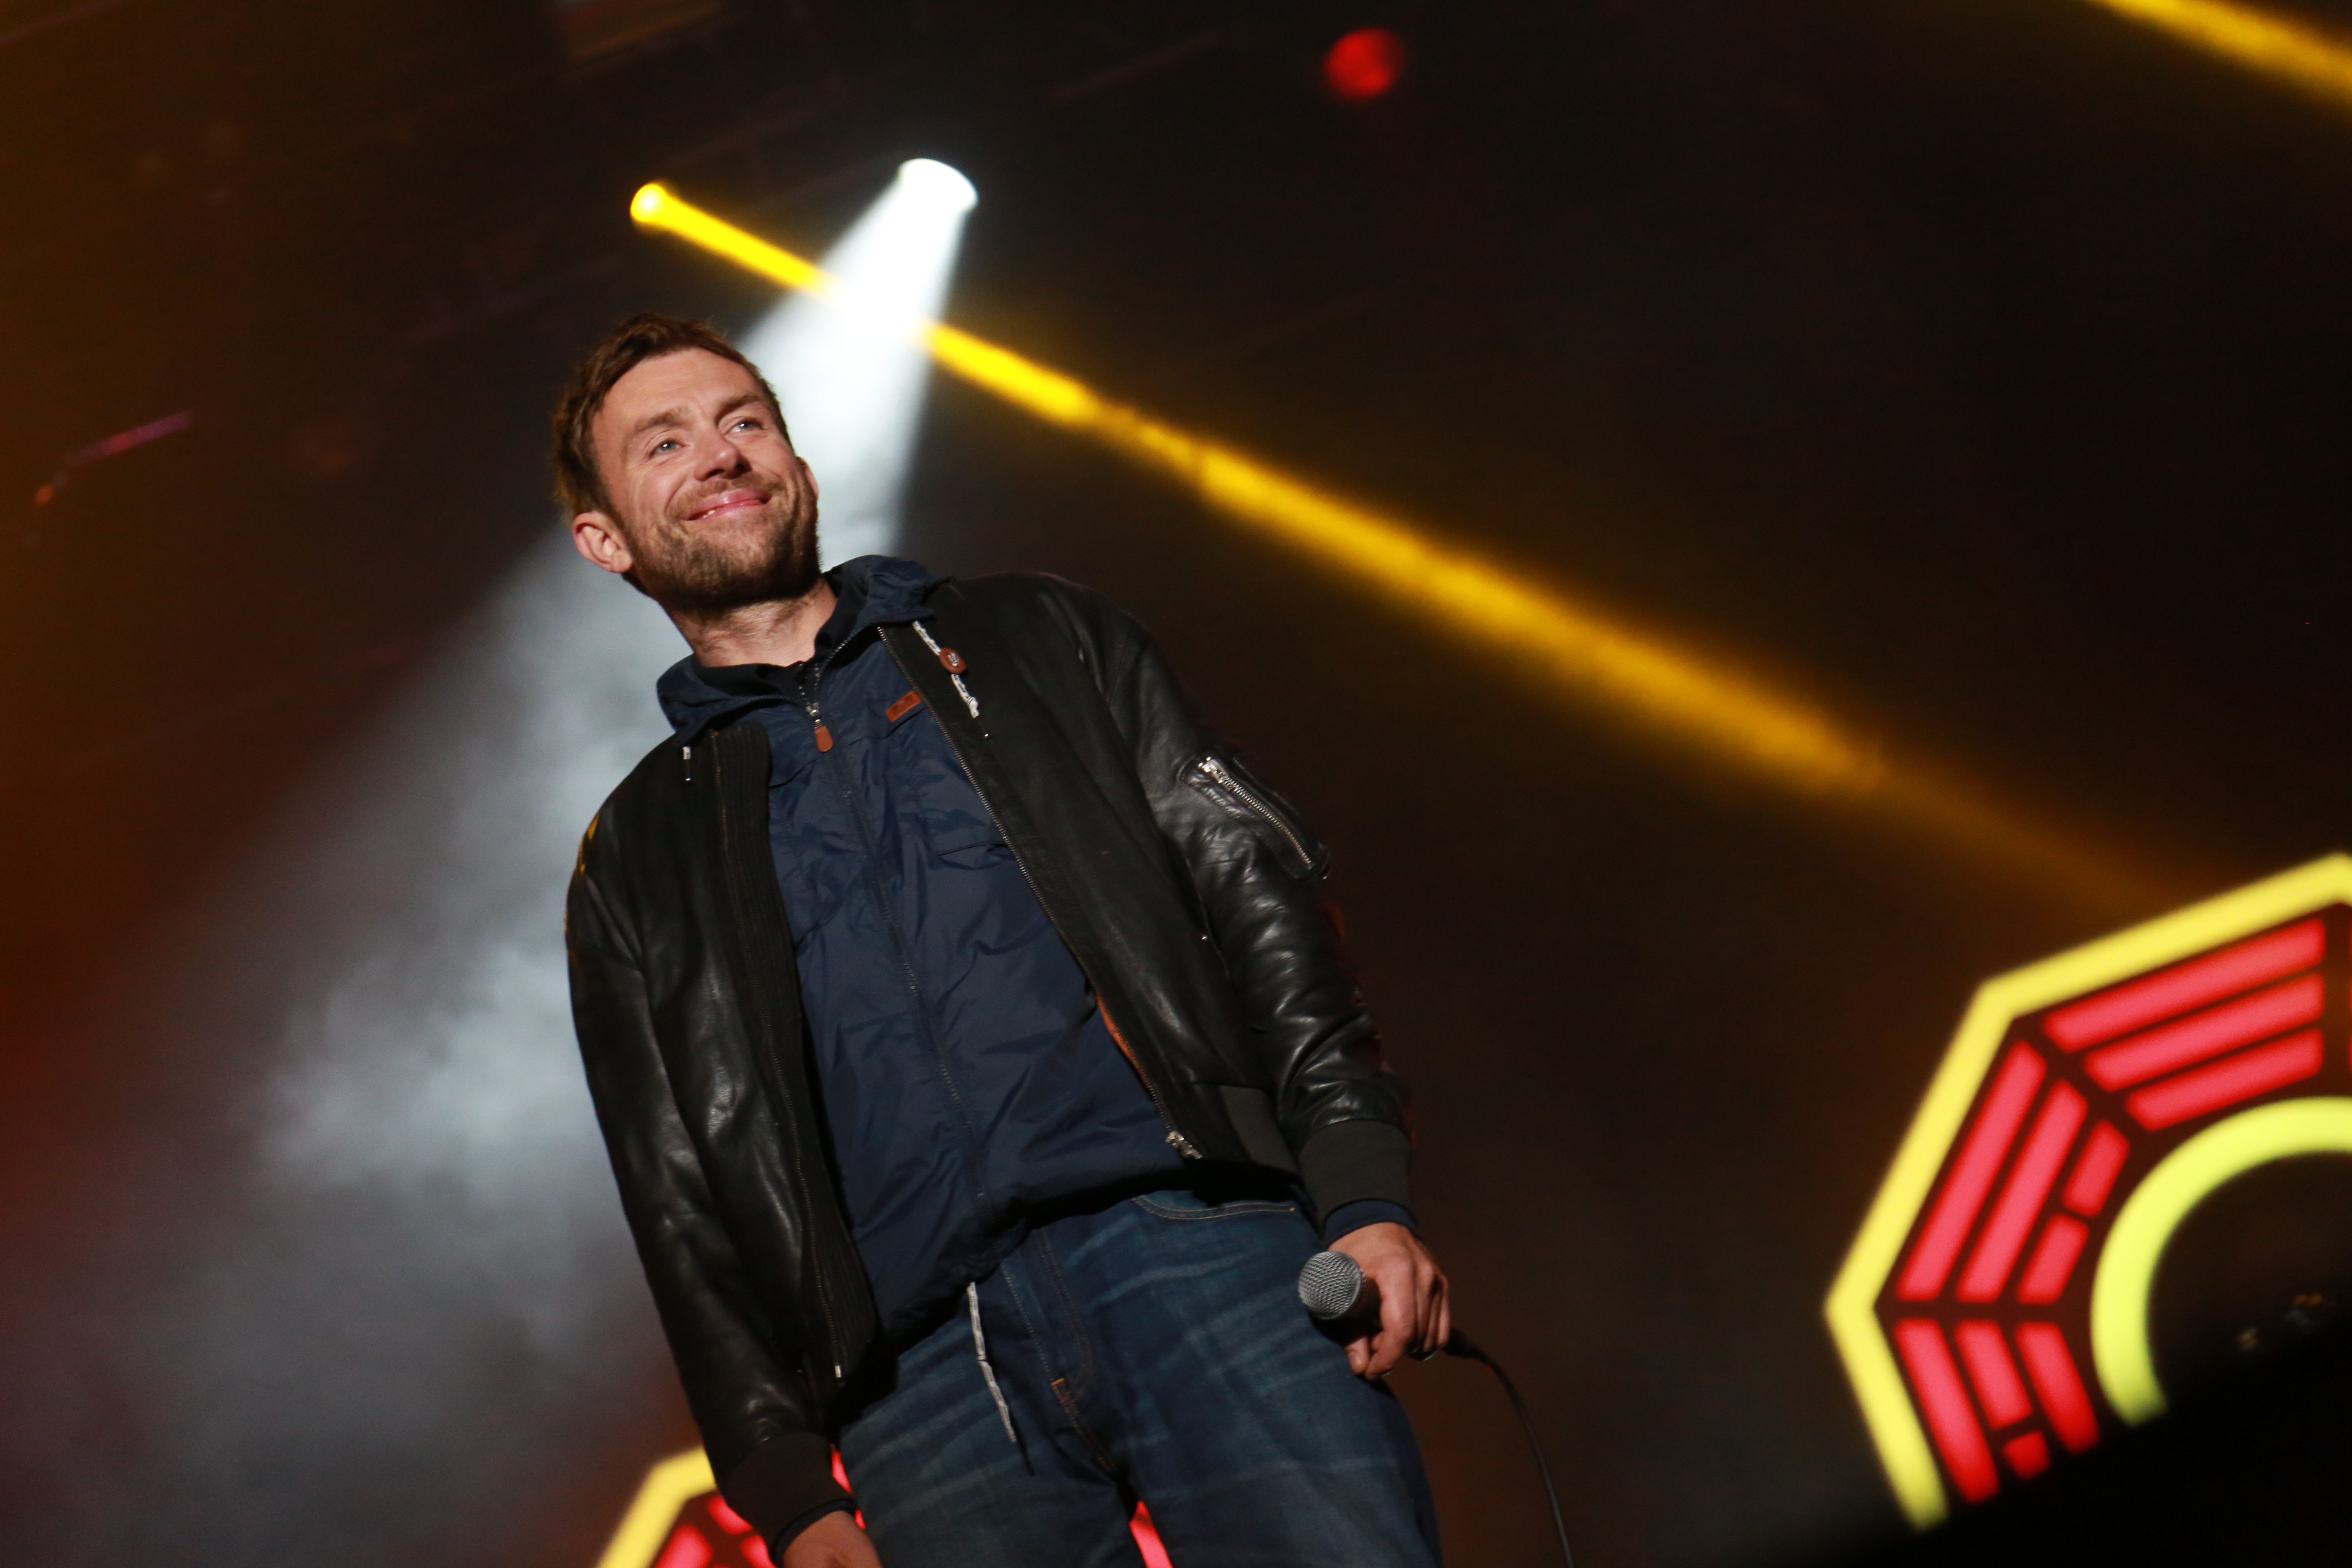 Damon Albarn of Blur performs on day 2 of the Electric Picnic Festival at Stradbally Hall Estate on September 5, 2015 in Stradbally, Ireland.